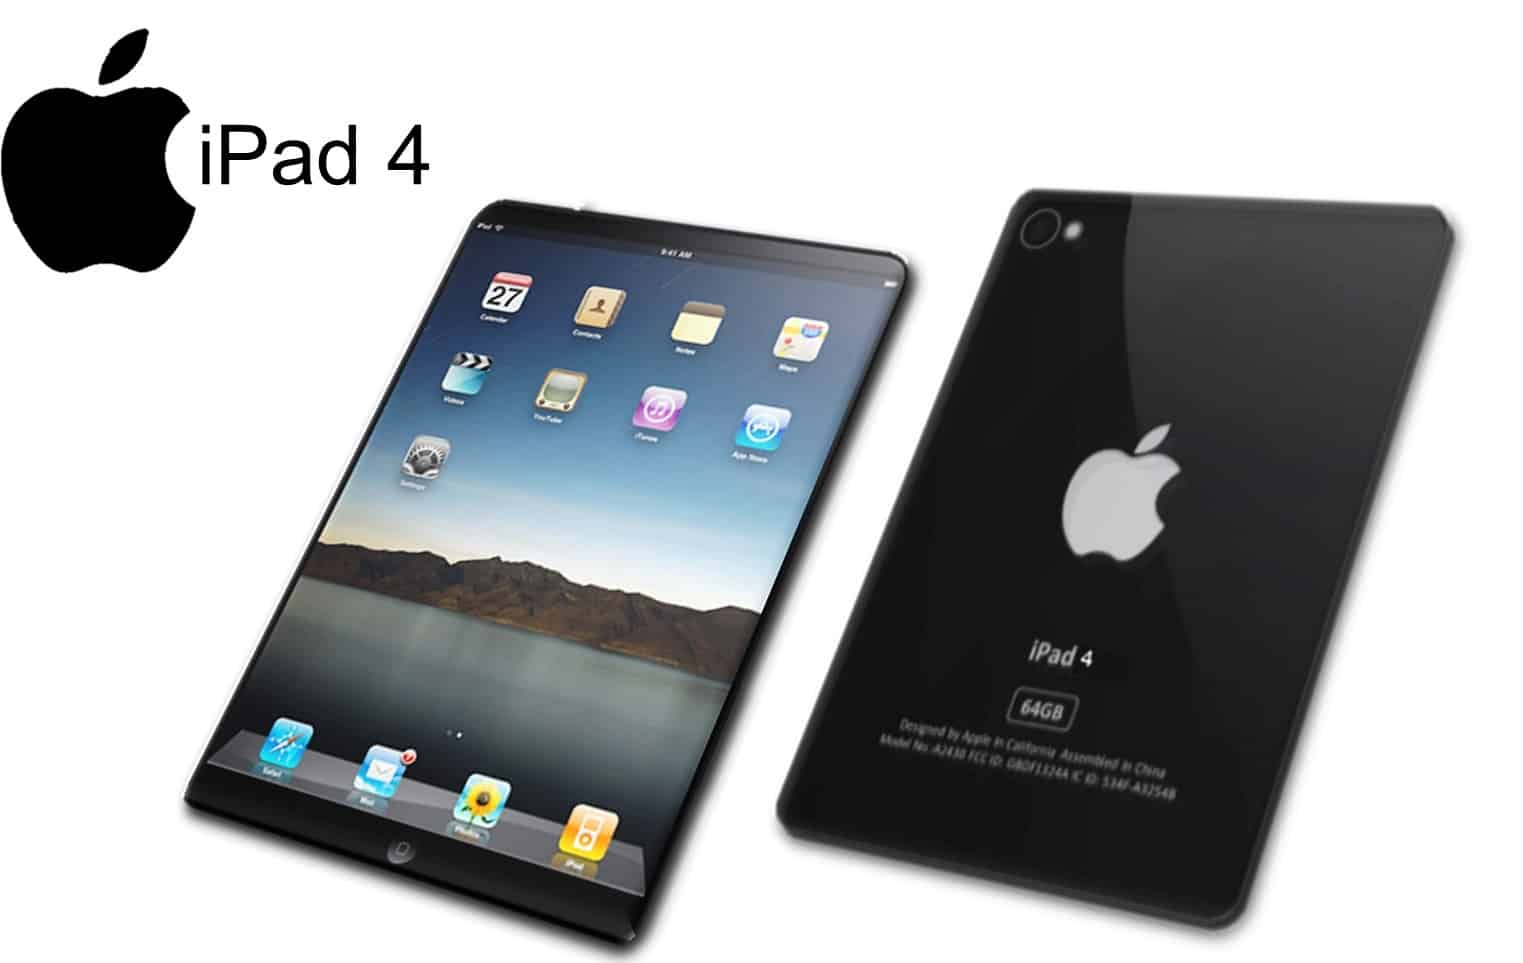 ipad features ipad4 and ipad5 features included   my